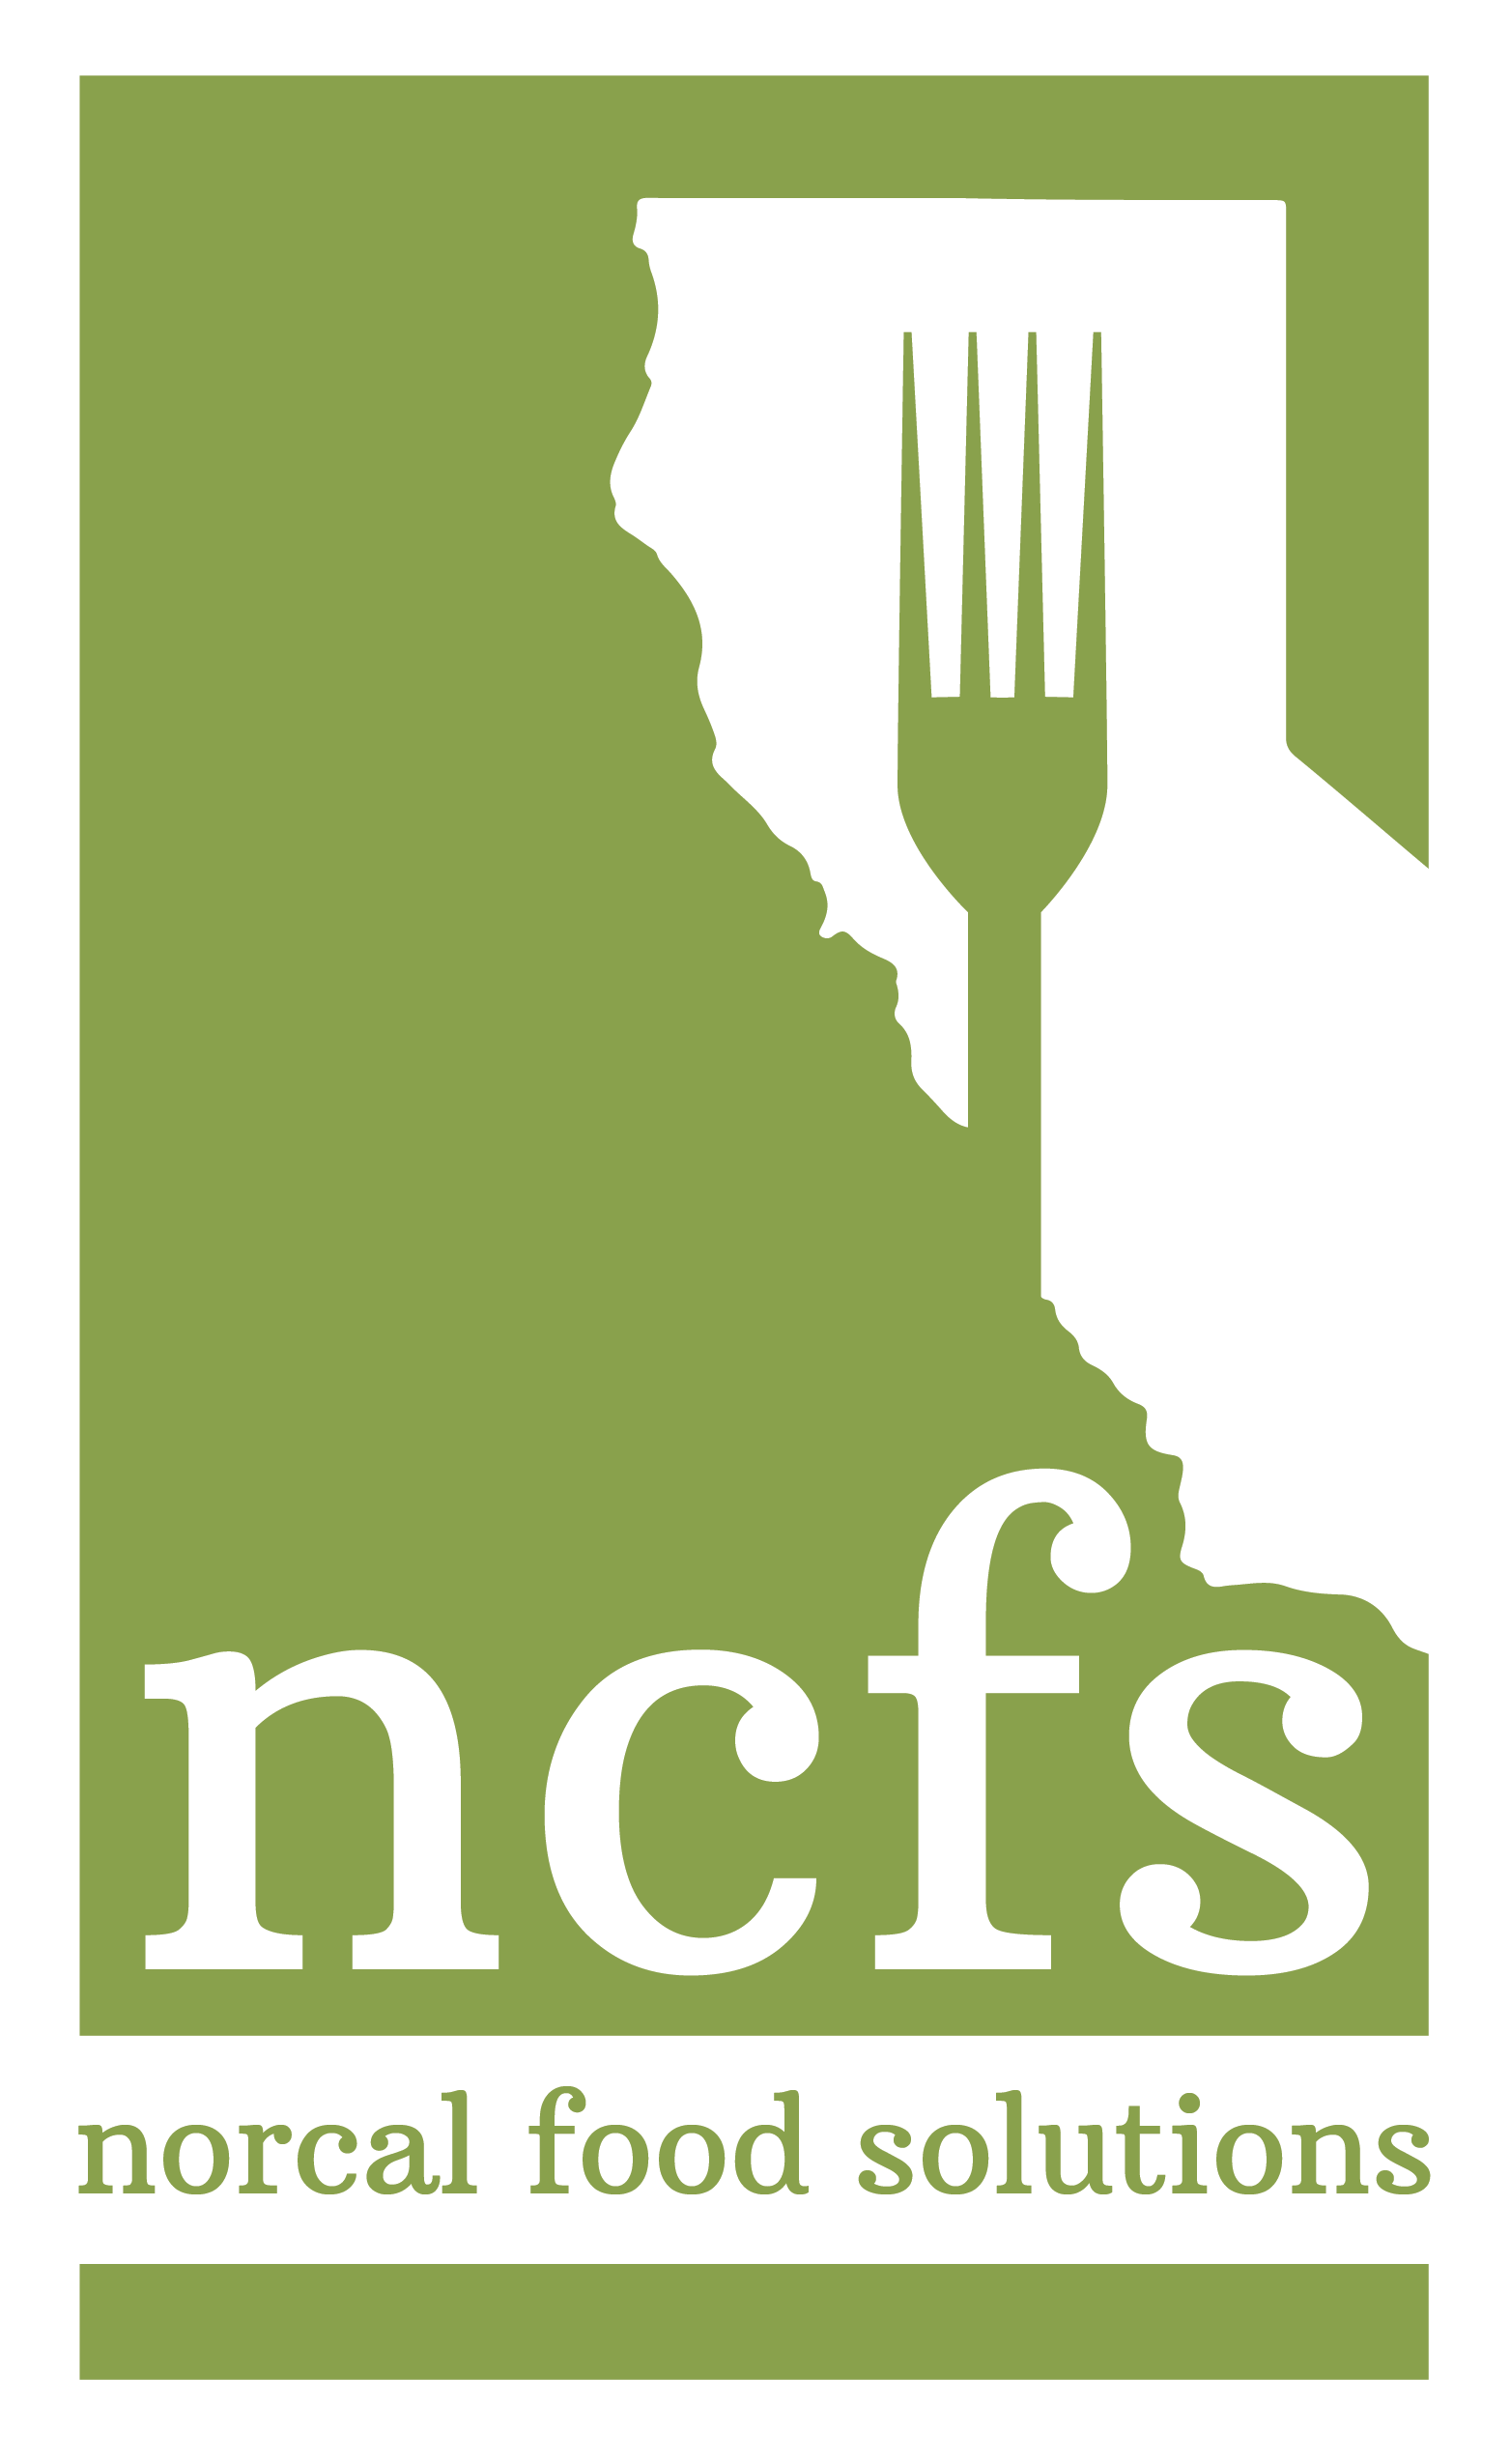 A Division of Norcal Food Solutions